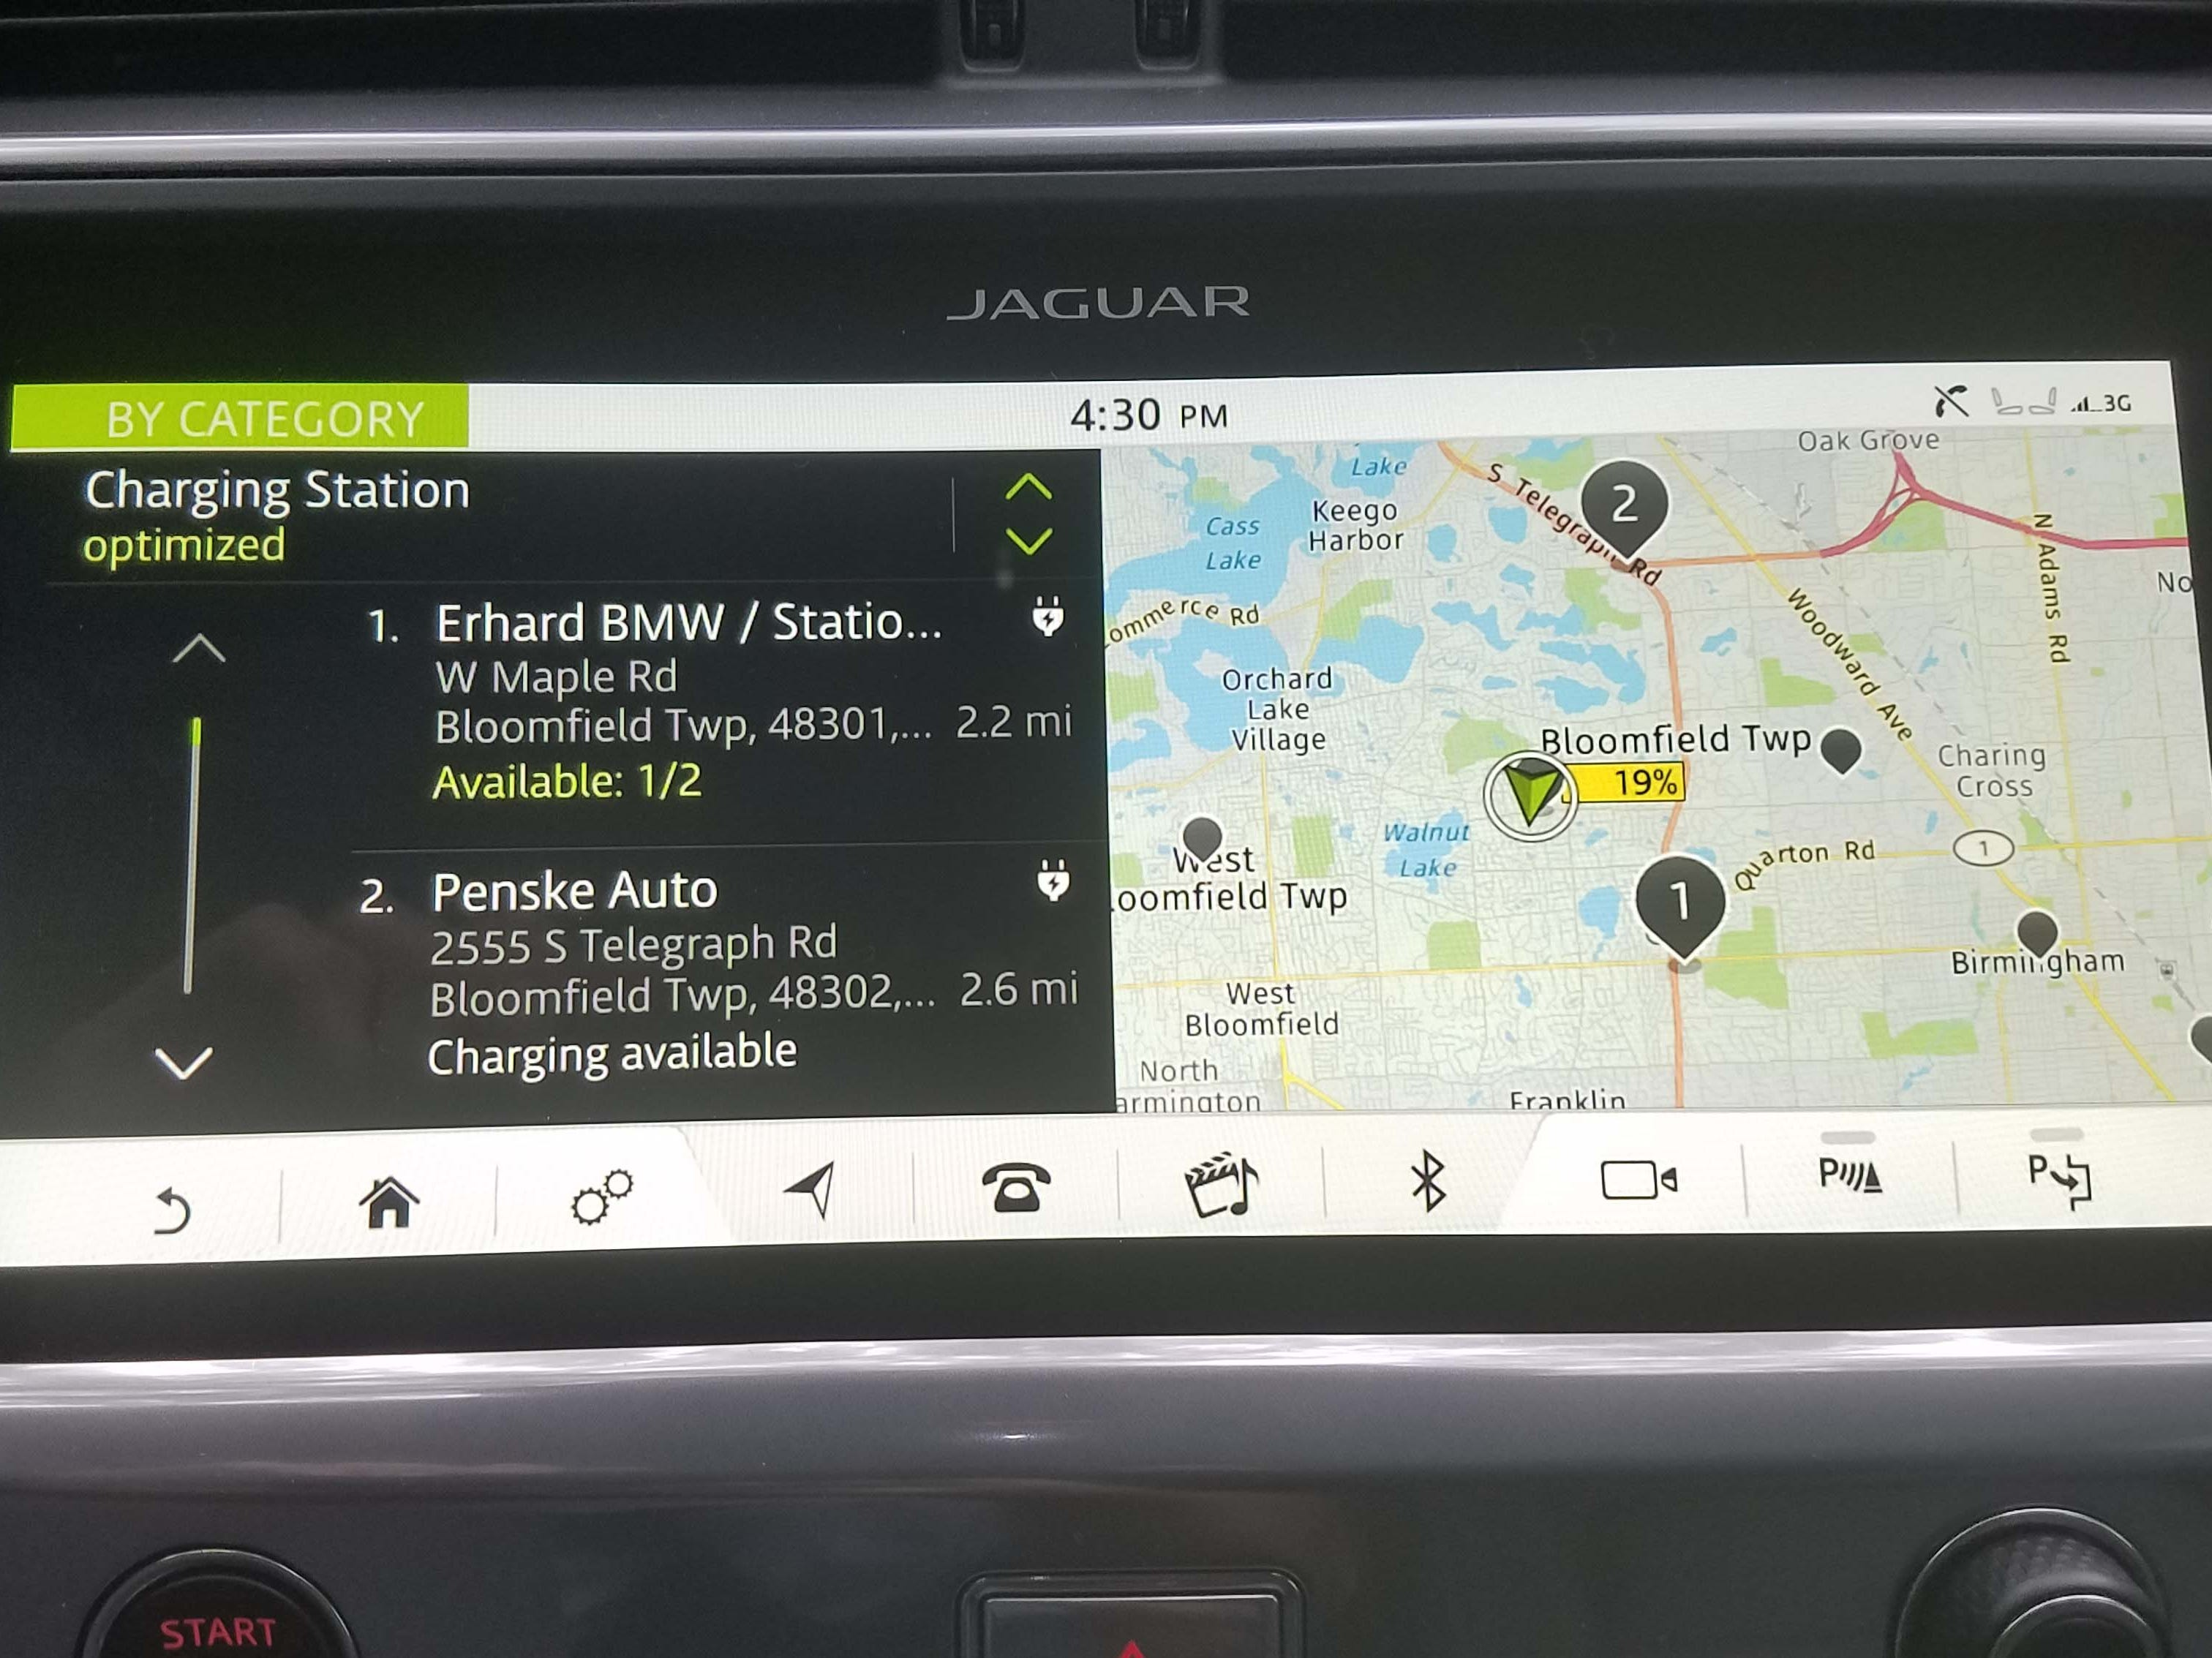 The Jaguar I-Pace nav system provides locations for chargers - but not all (like the BMW dealer that moved months ago) are there.